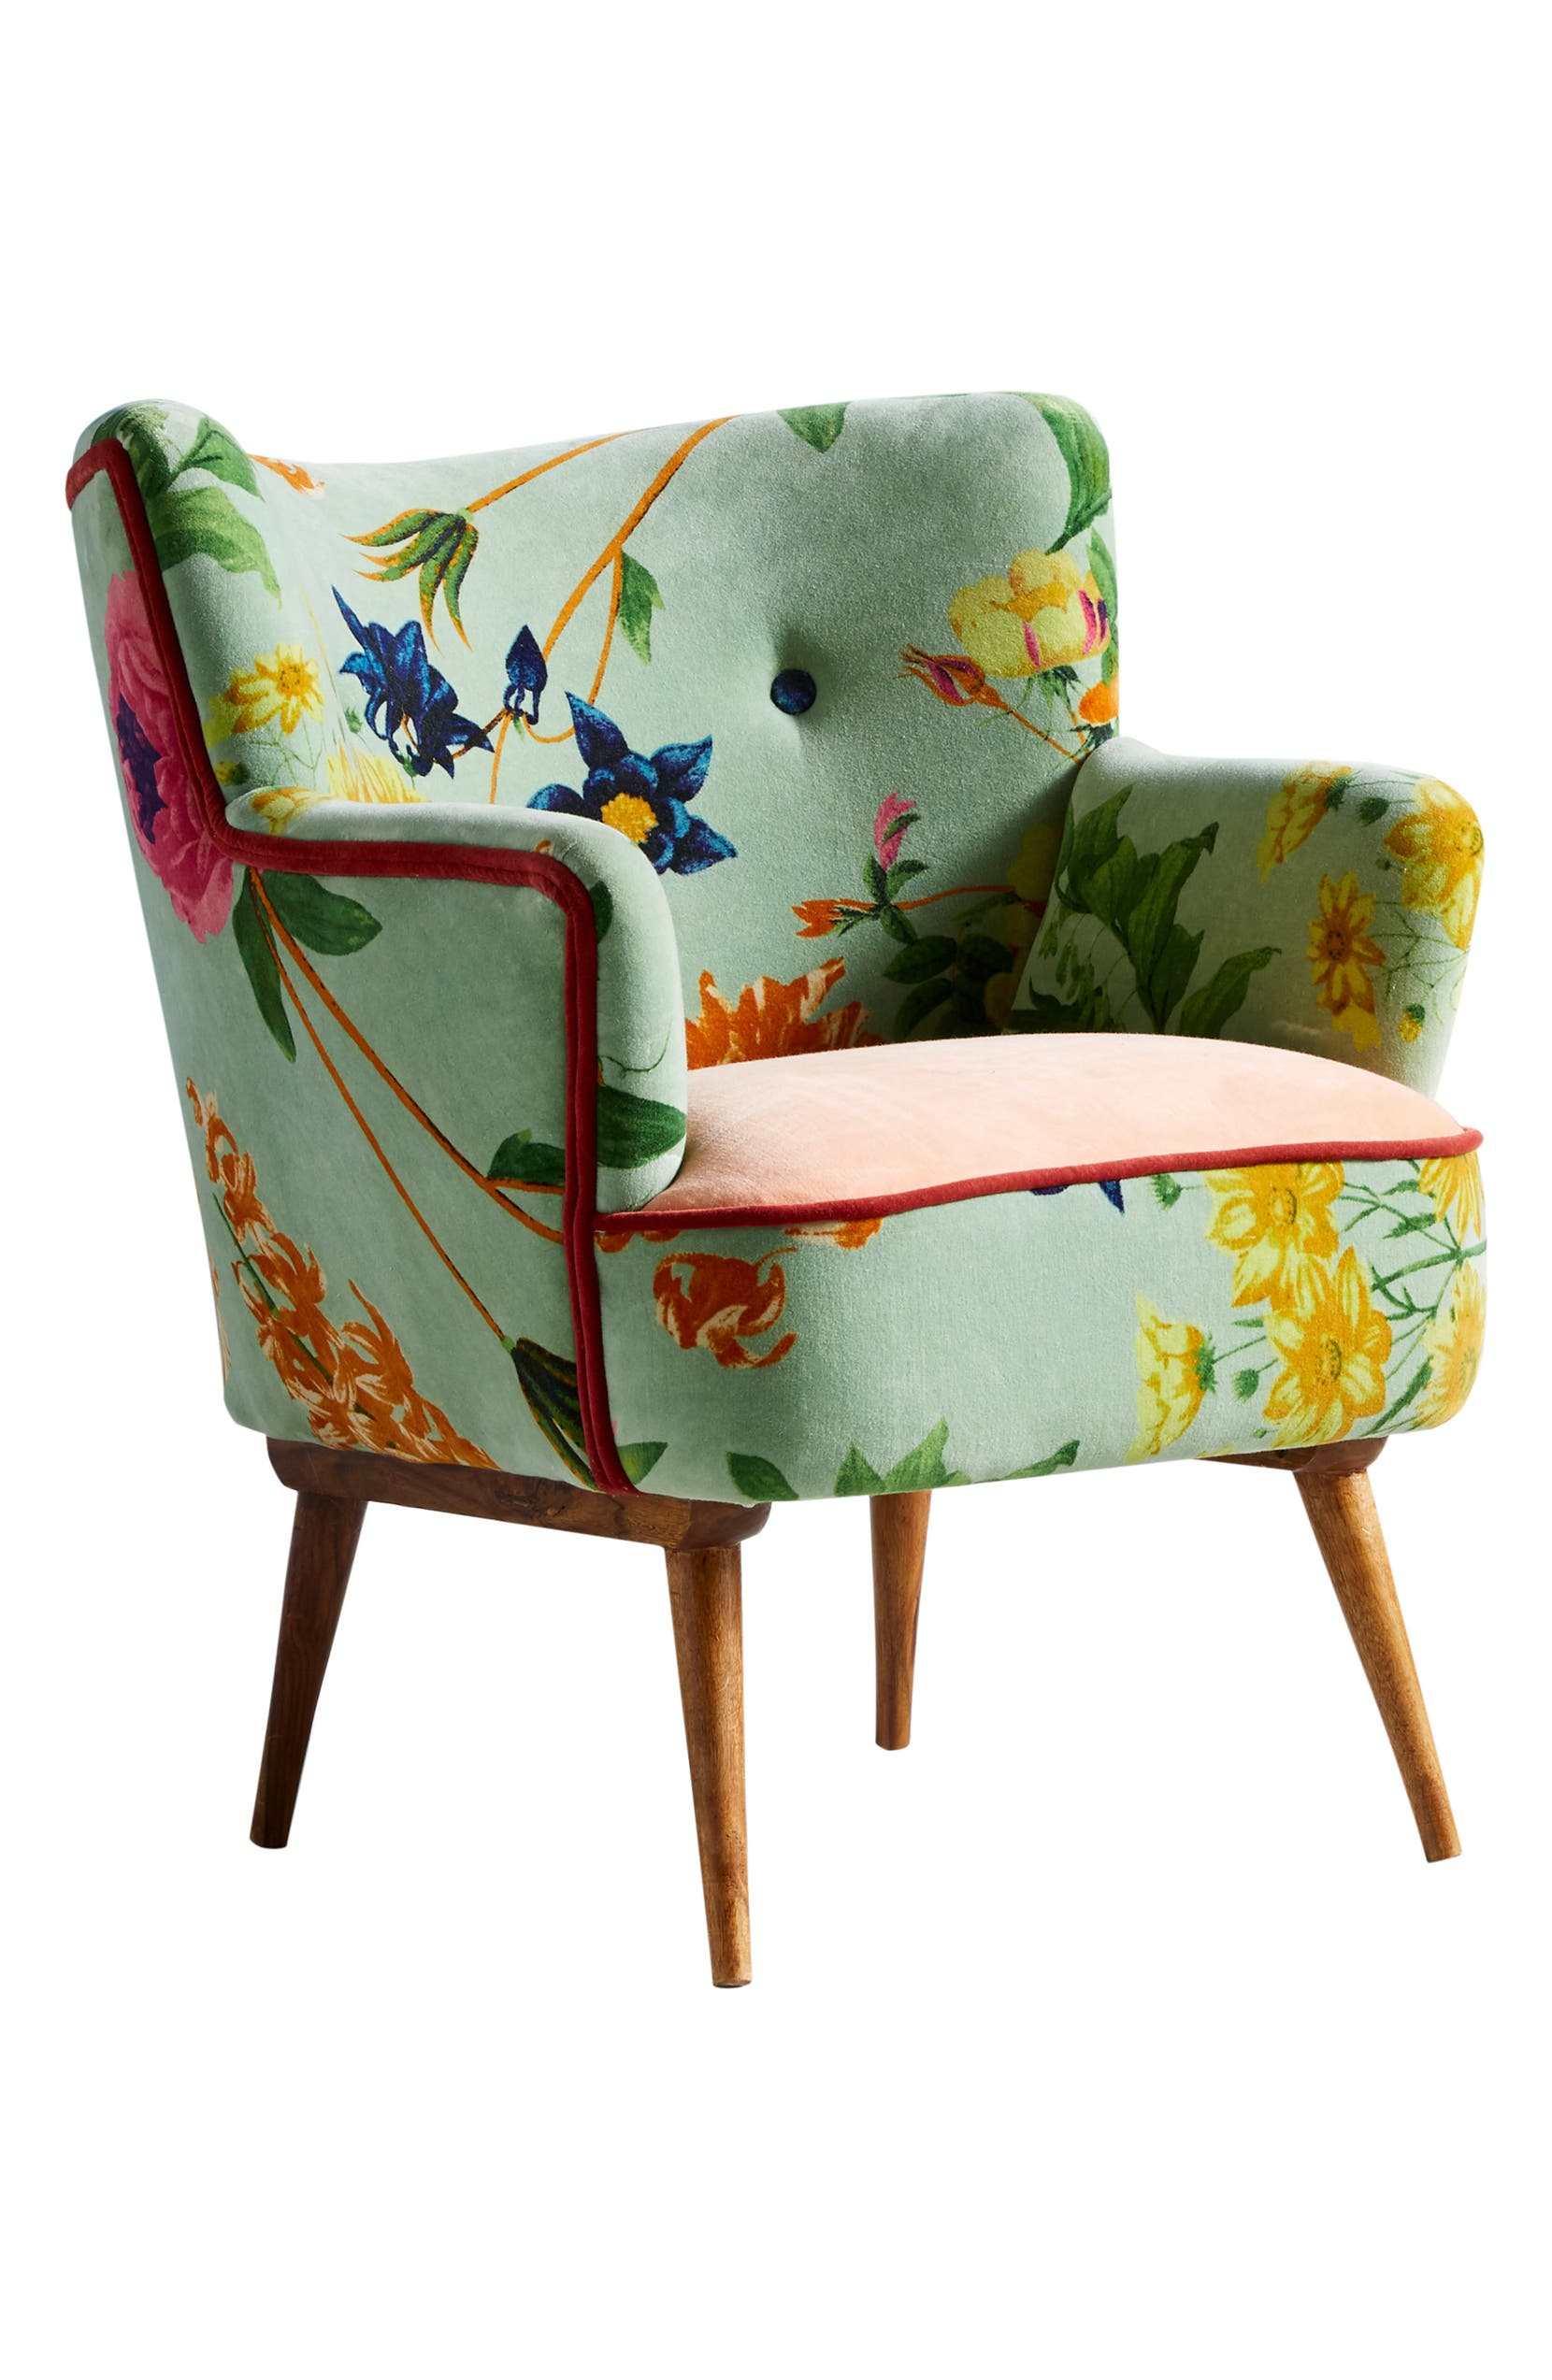 Fabulous Anthropologie Floret Accent Chair Nordstrom Gamerscity Chair Design For Home Gamerscityorg